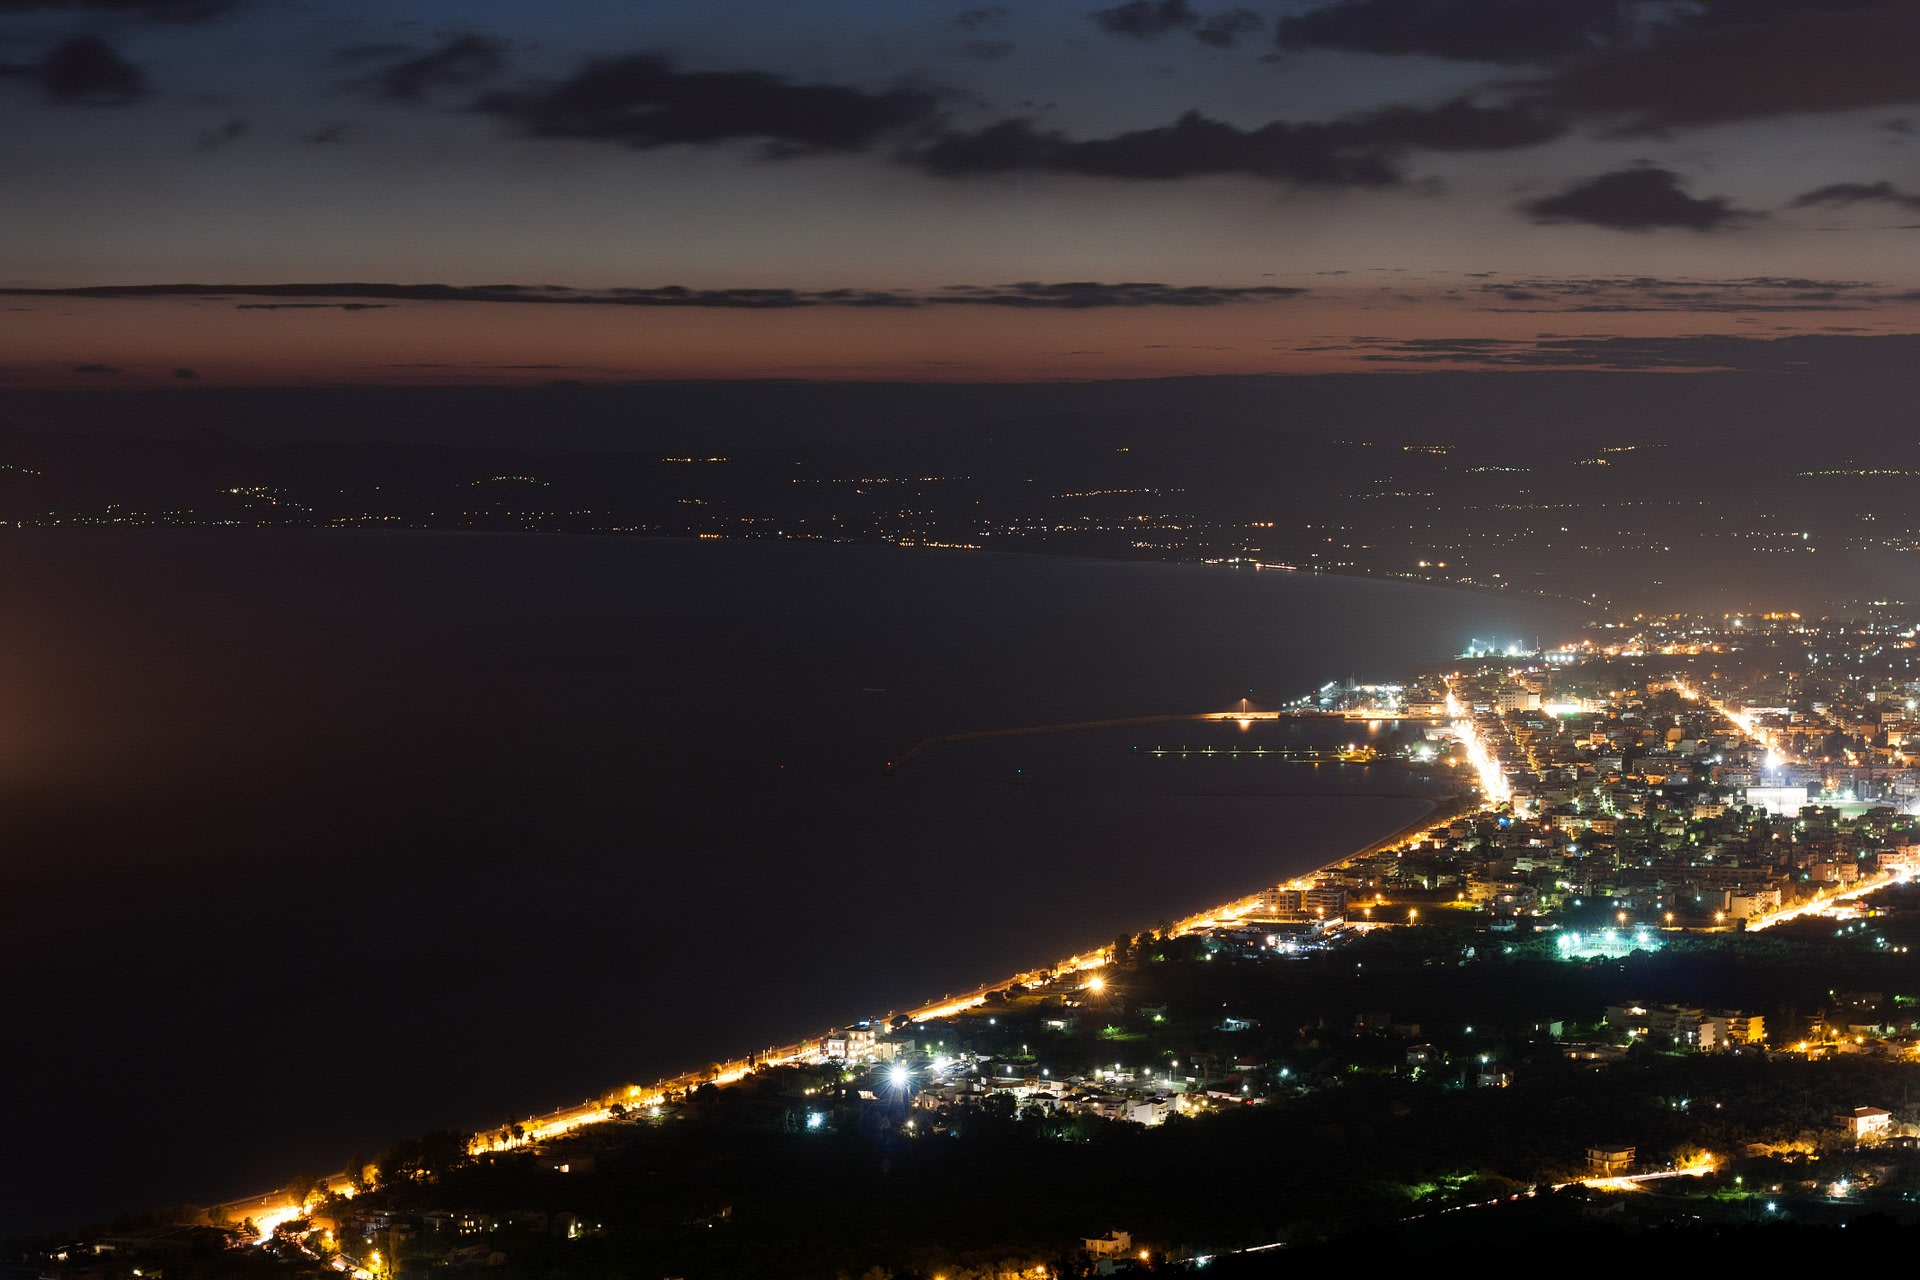 A City in Greece at Night